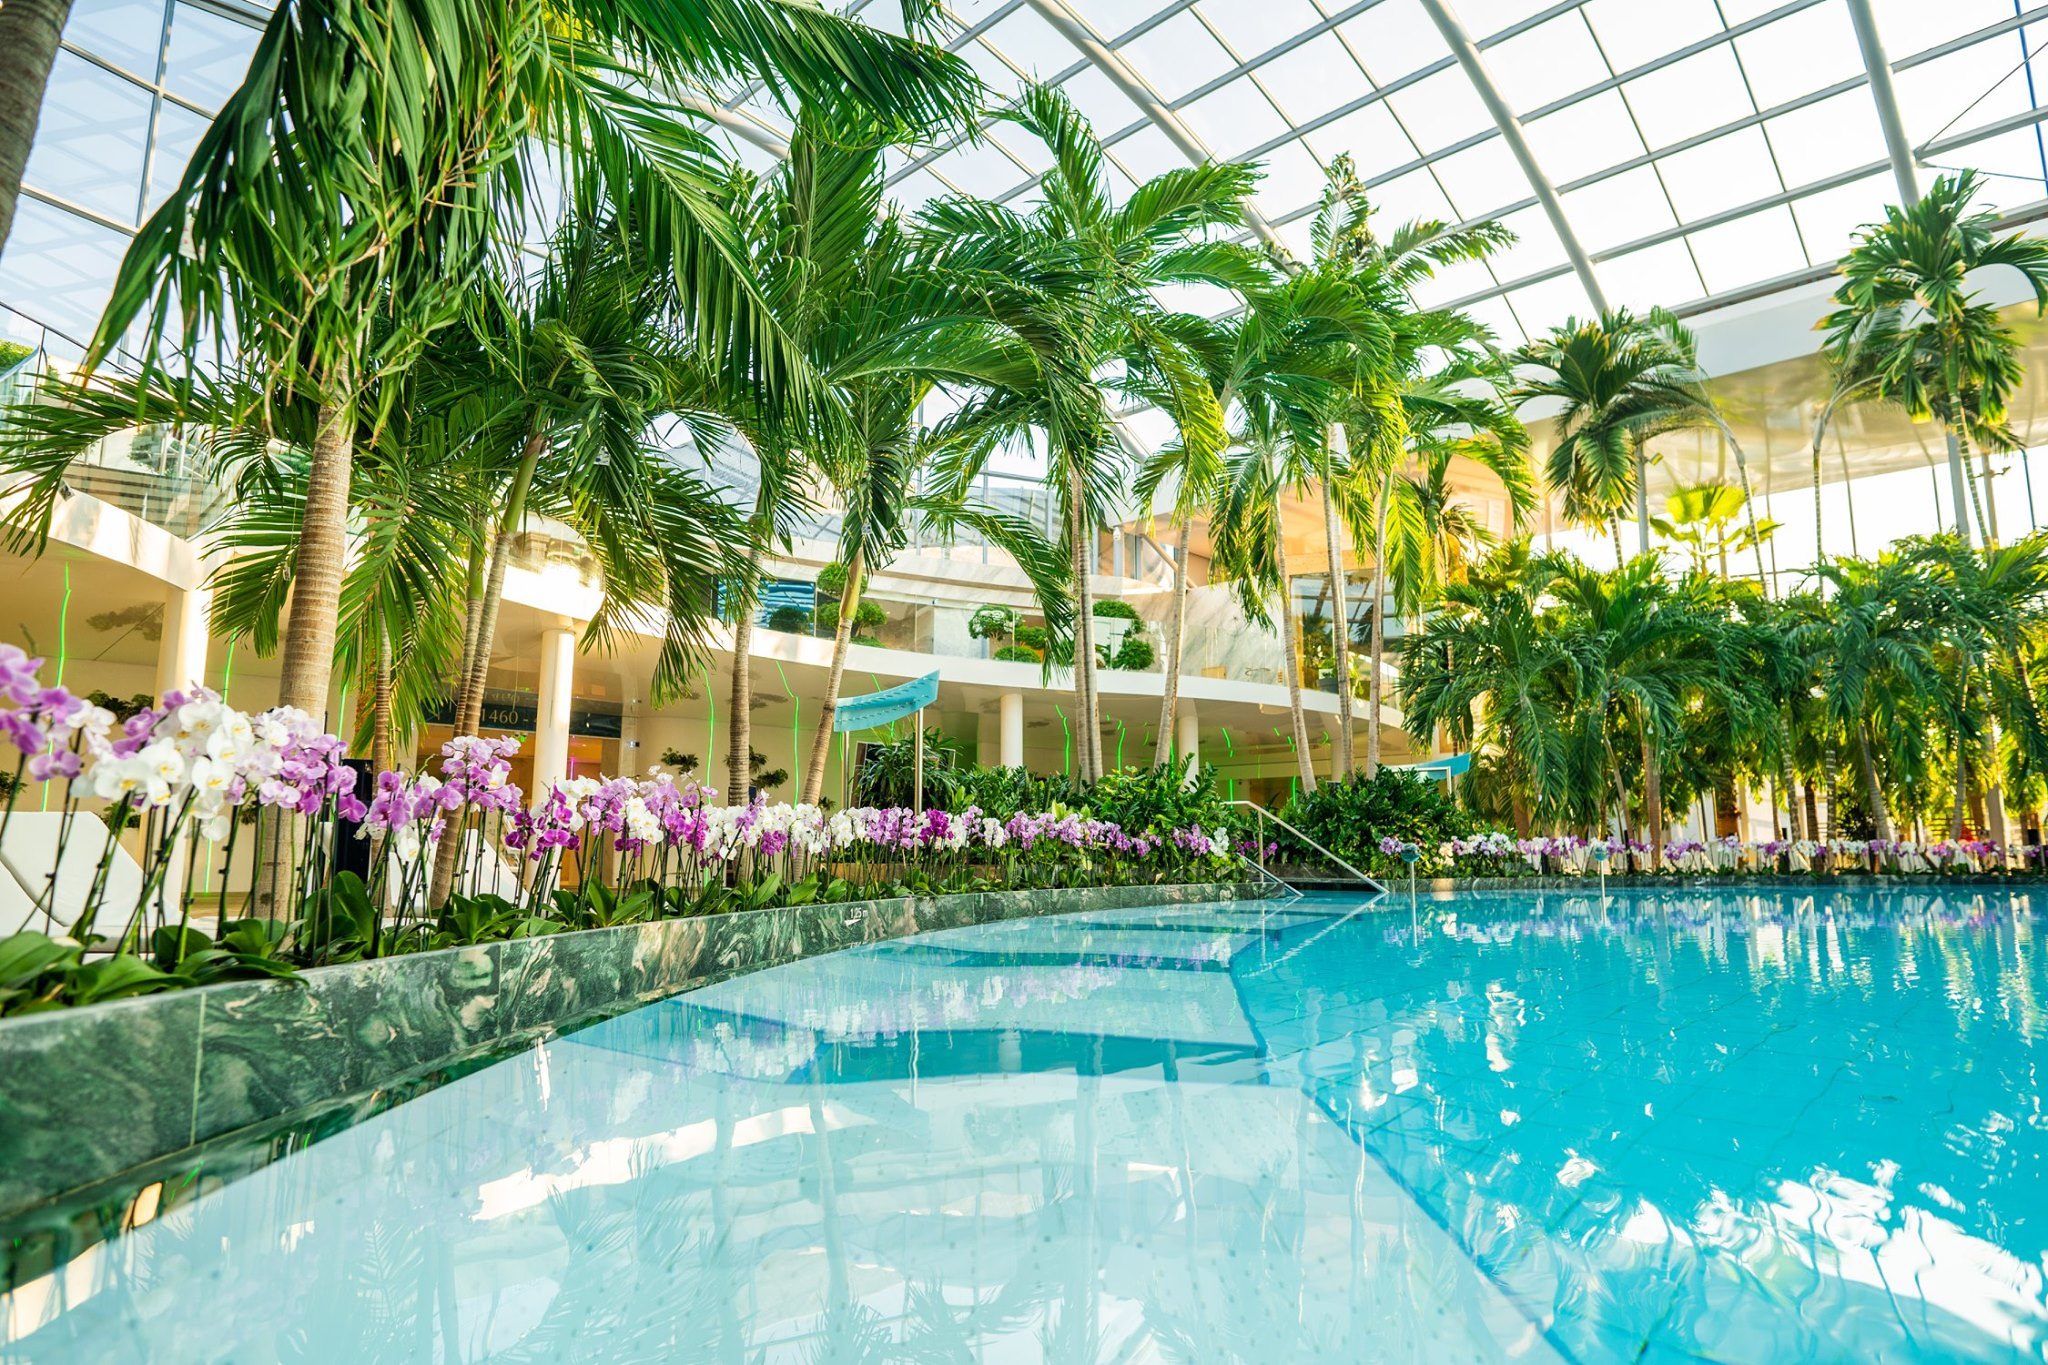 Therme 84